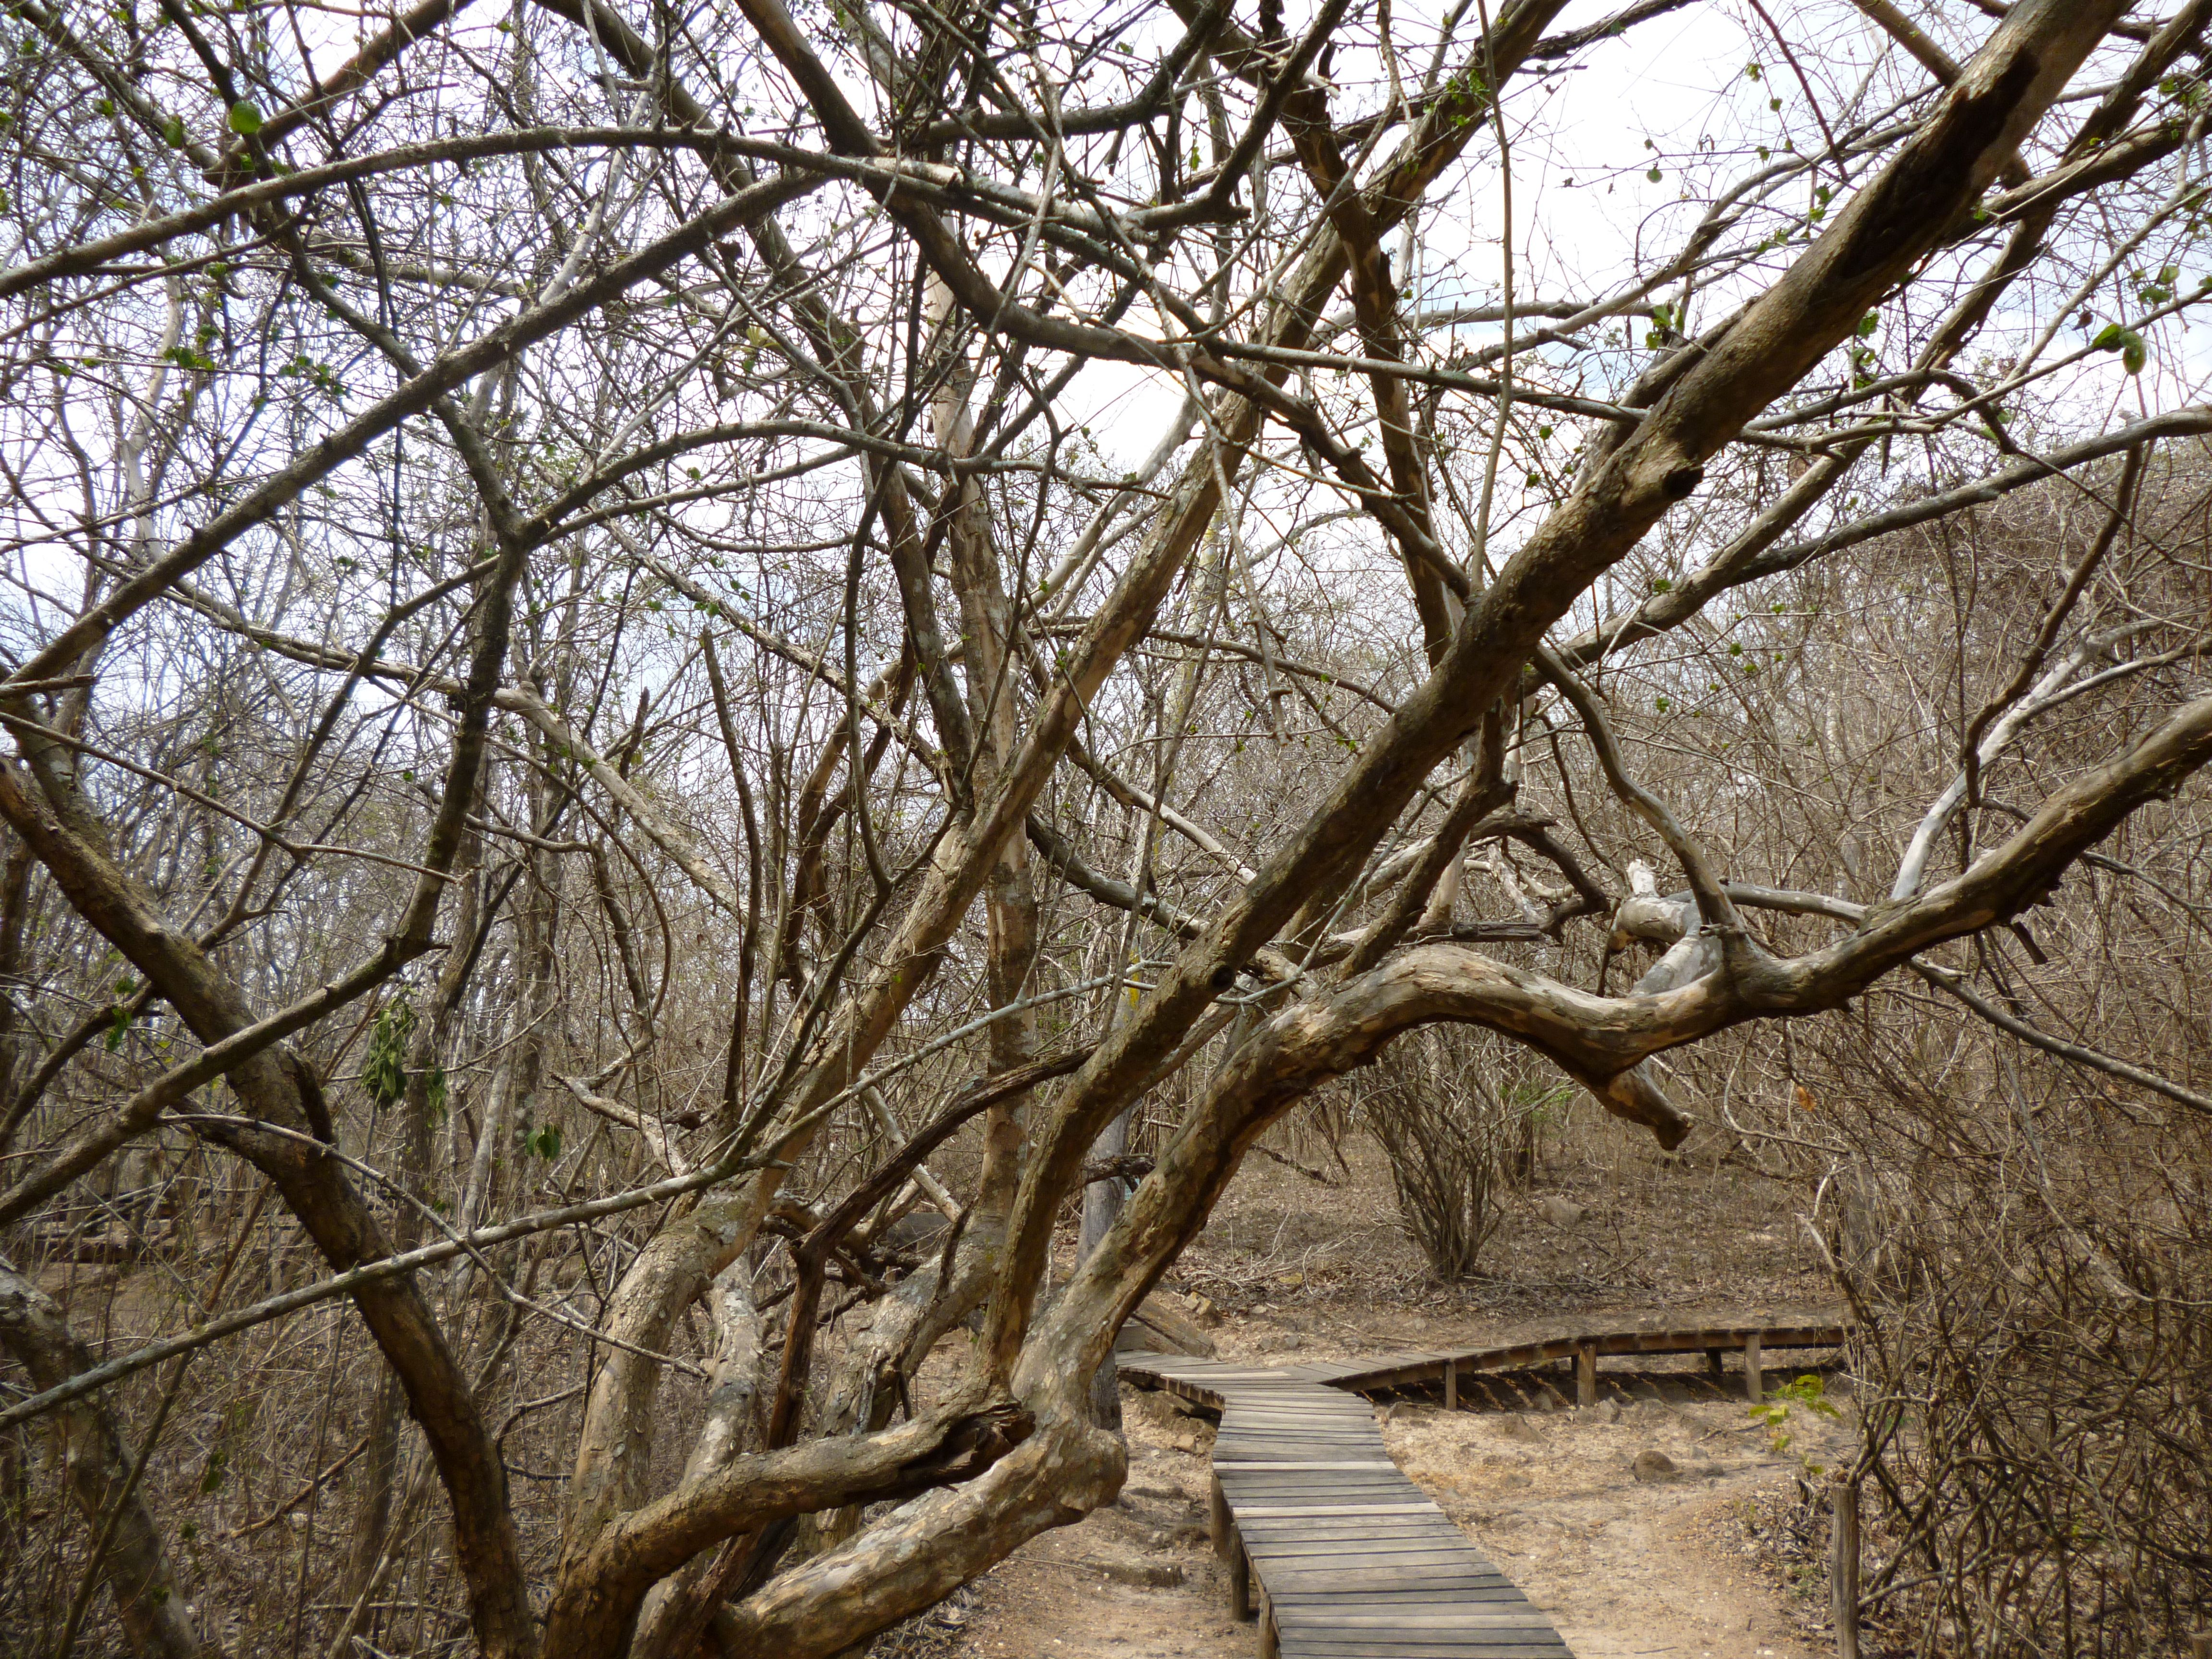 To protect the delicate ecology, the Puyango forest floor is laced with raised boardwalks.